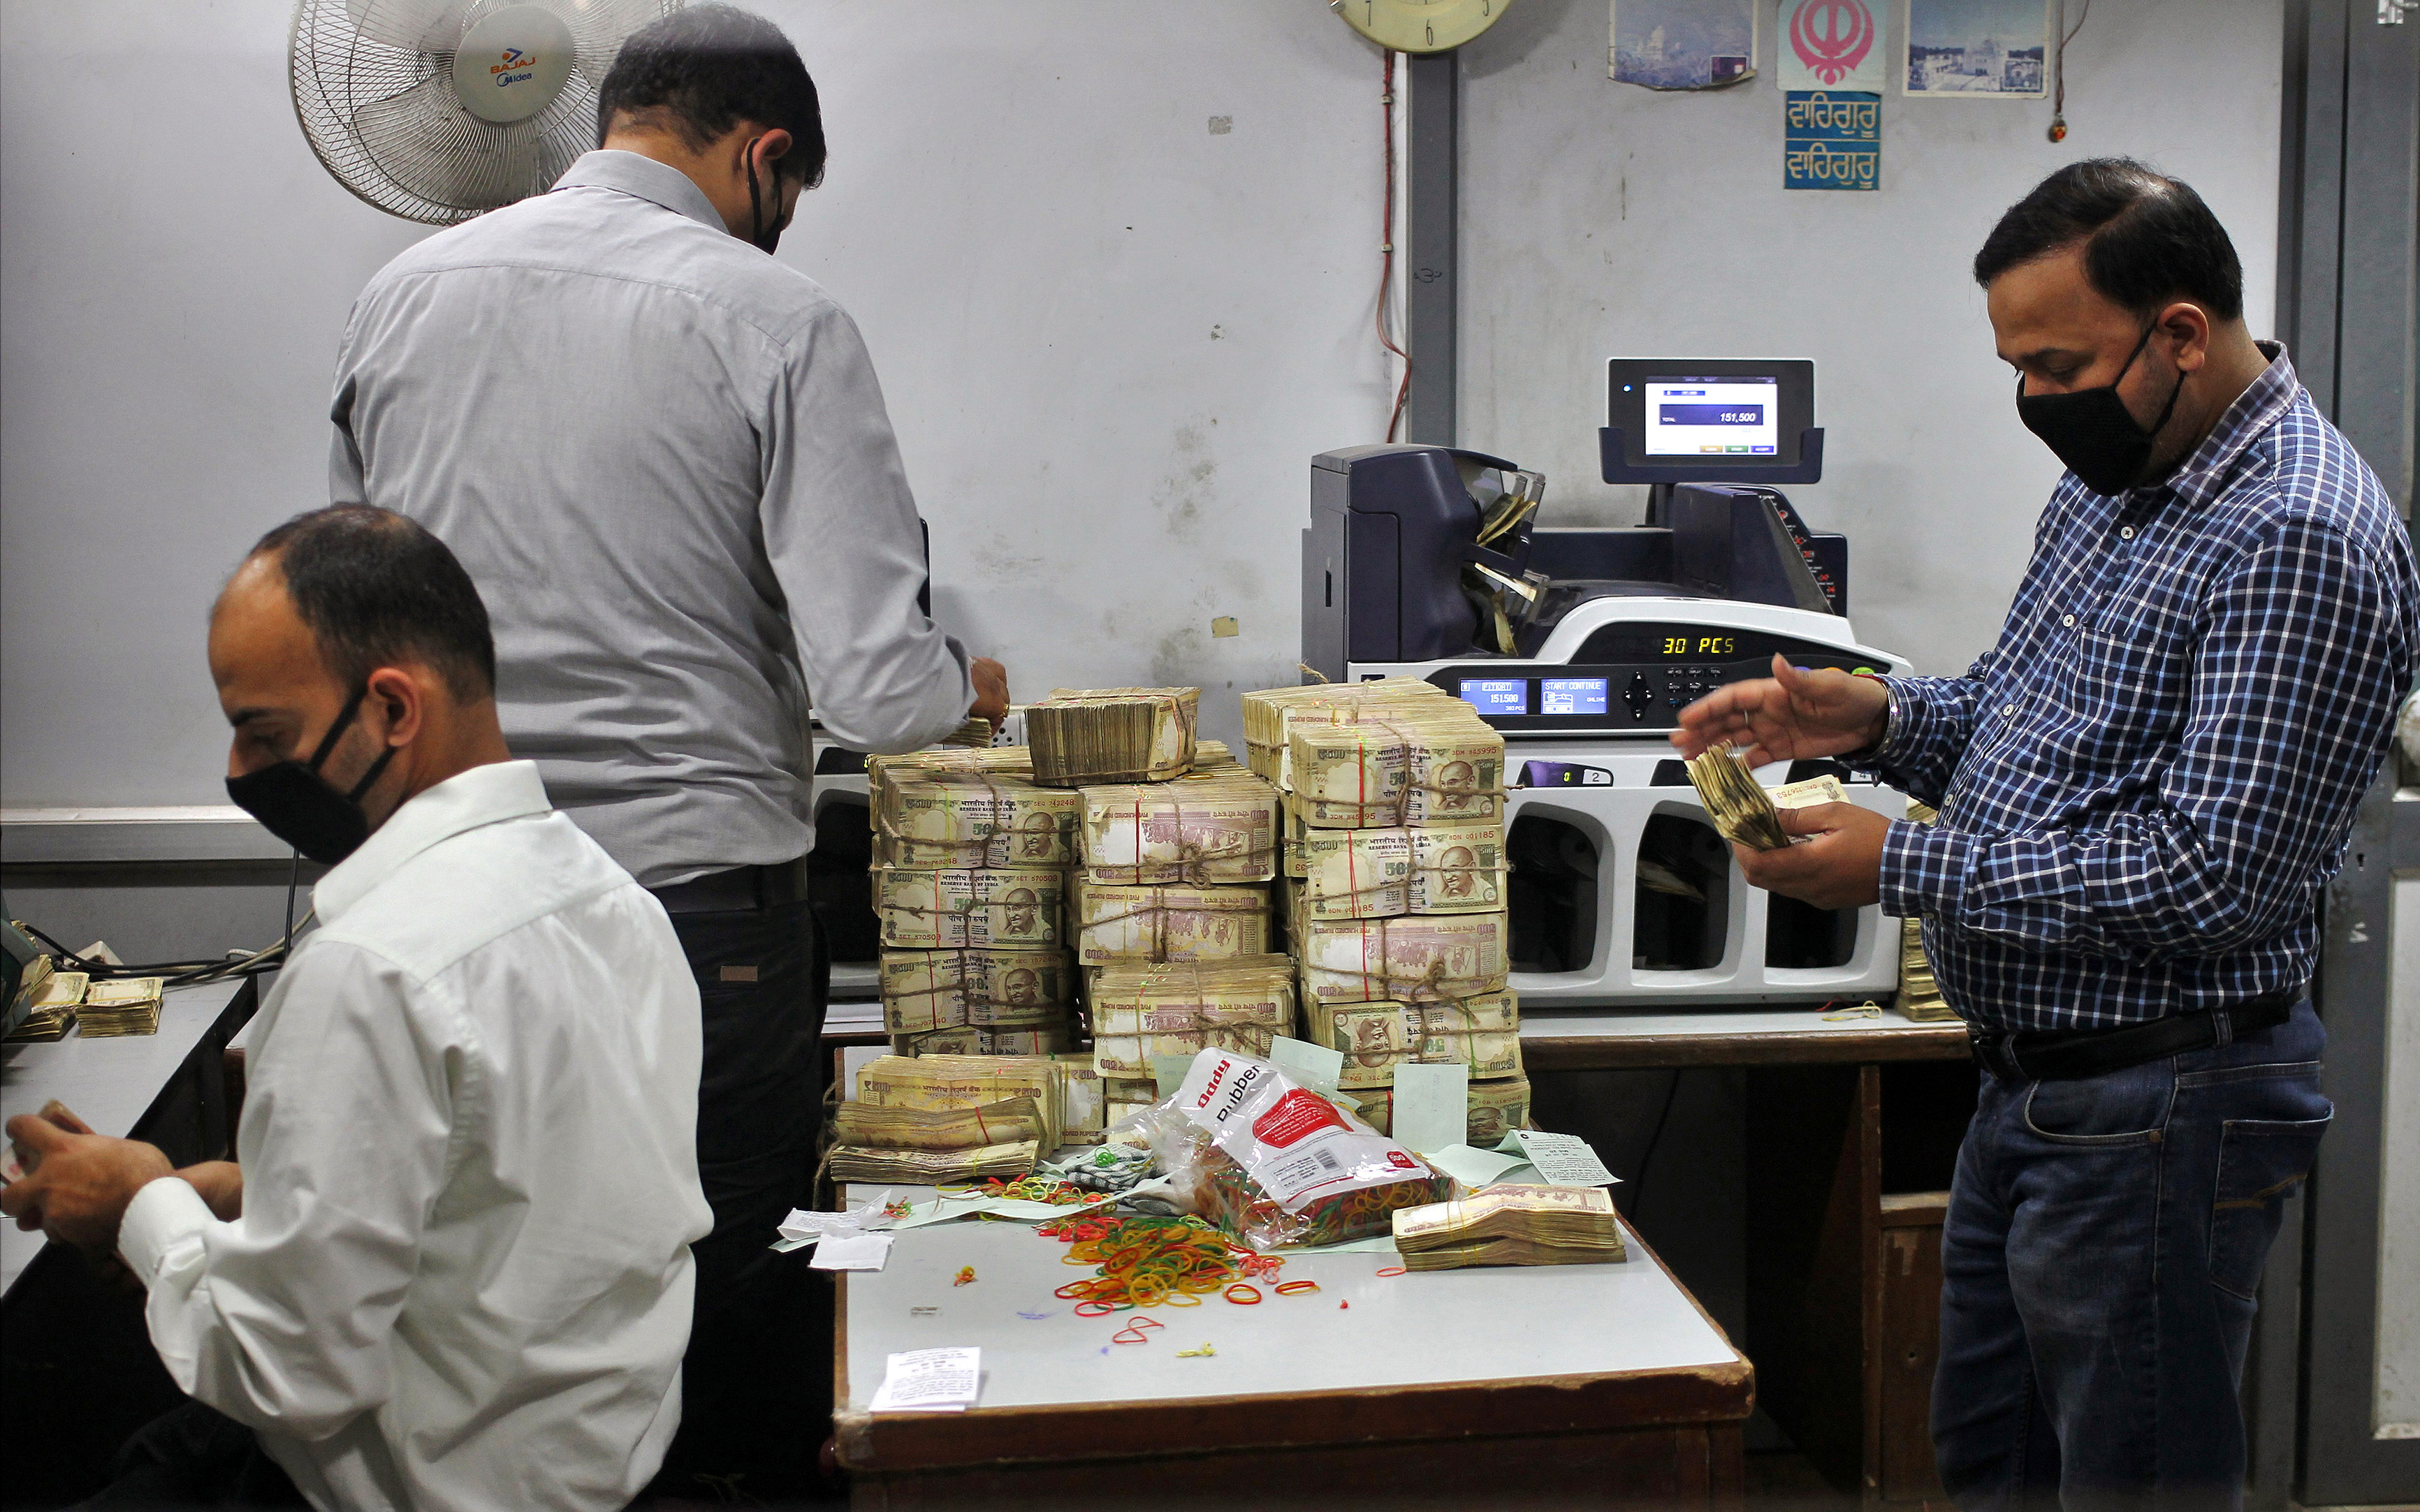 圖片來源:《達志影像》 圖片取自路透社 Bank employees count old 500 Indian rupee banknotes inside a bank in Jammu November 11, 2016. REUTERS/ Mukesh Gupta - RTX2T6D9